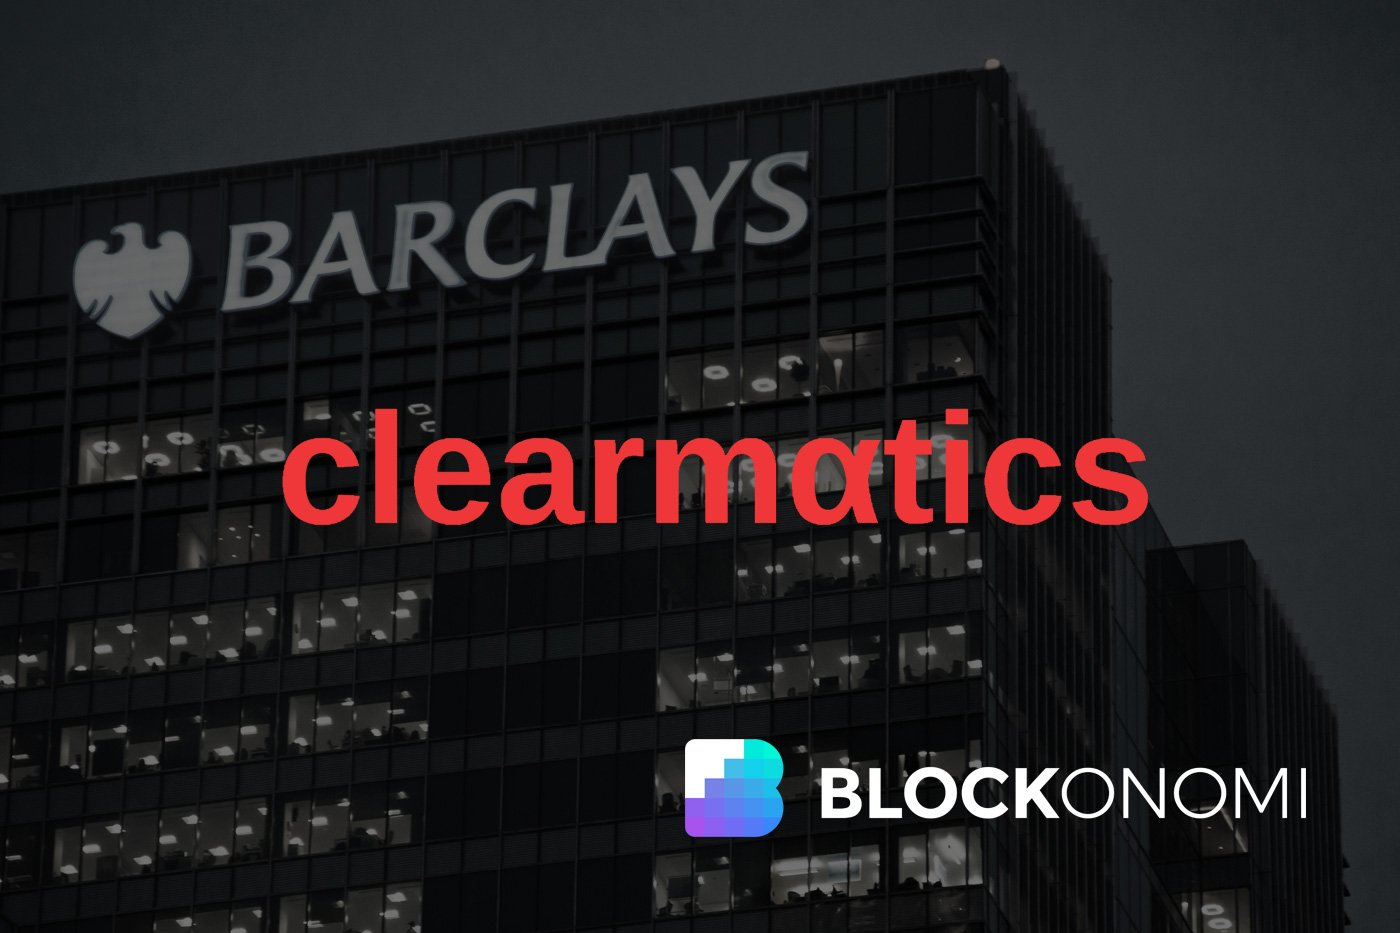 Barclays & Clearmatics Blockchain